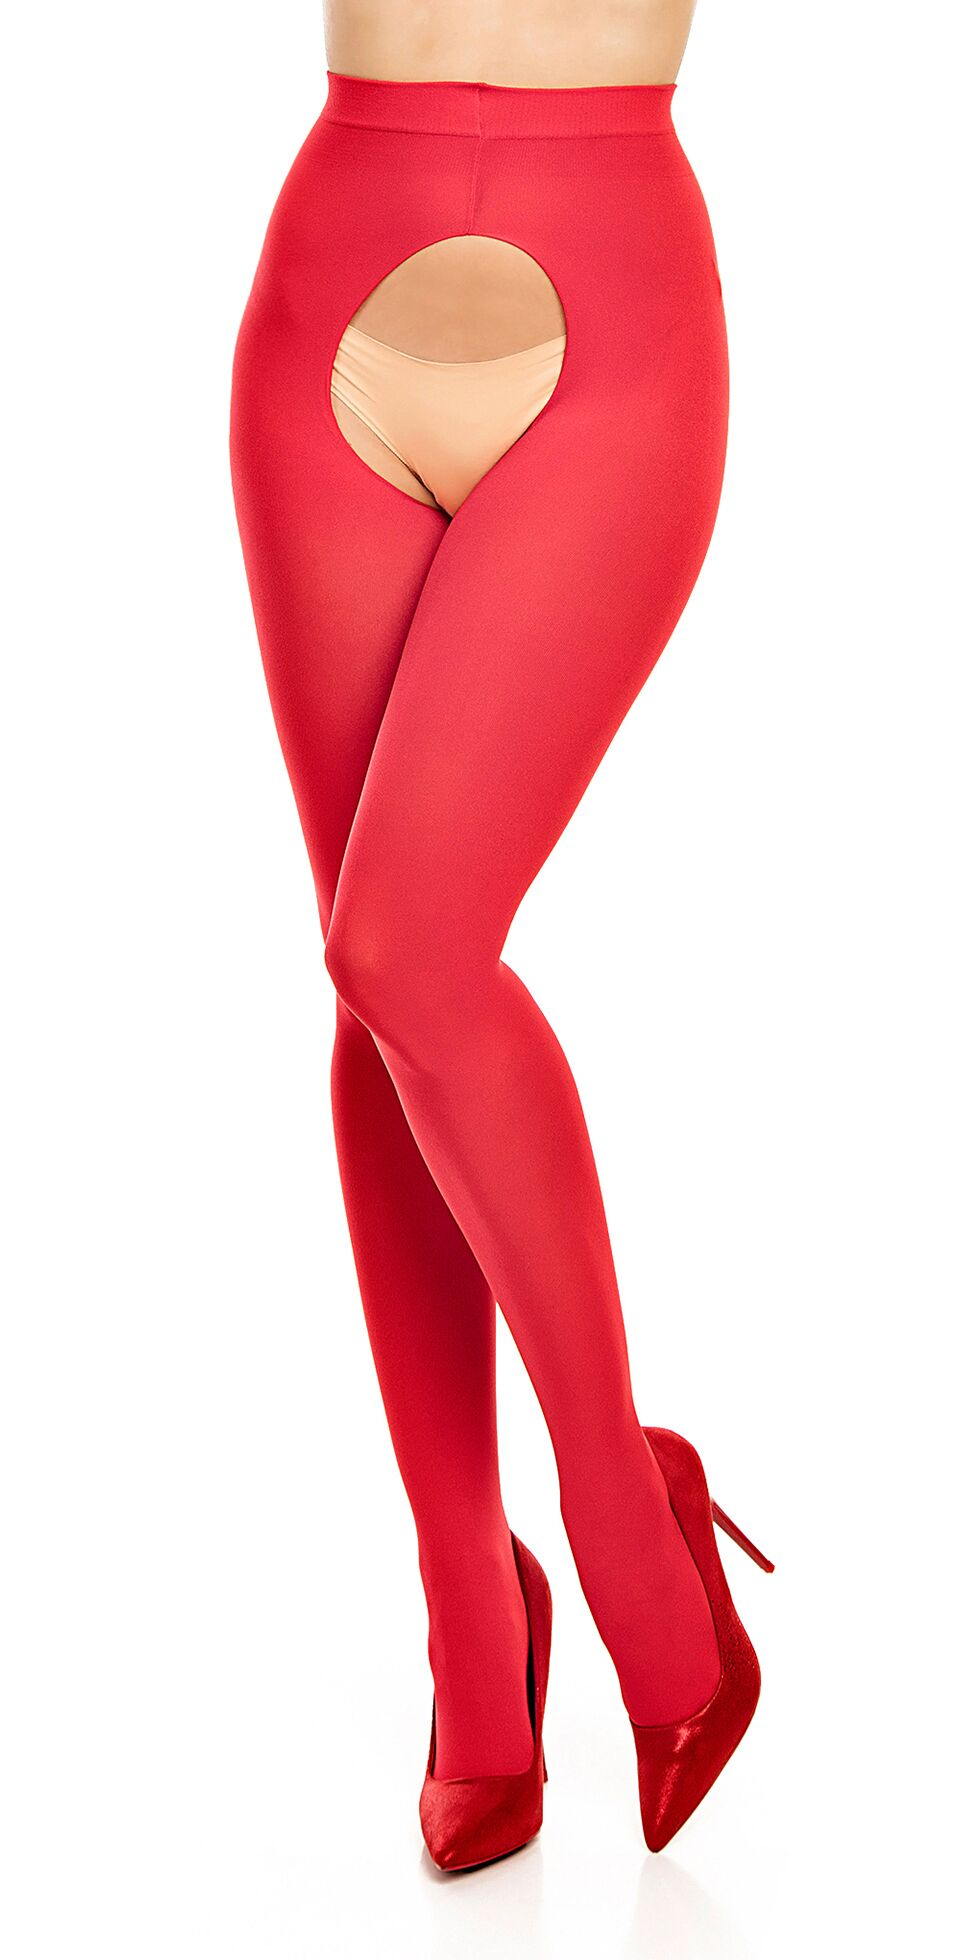 Opaque plus size tights with open crotch